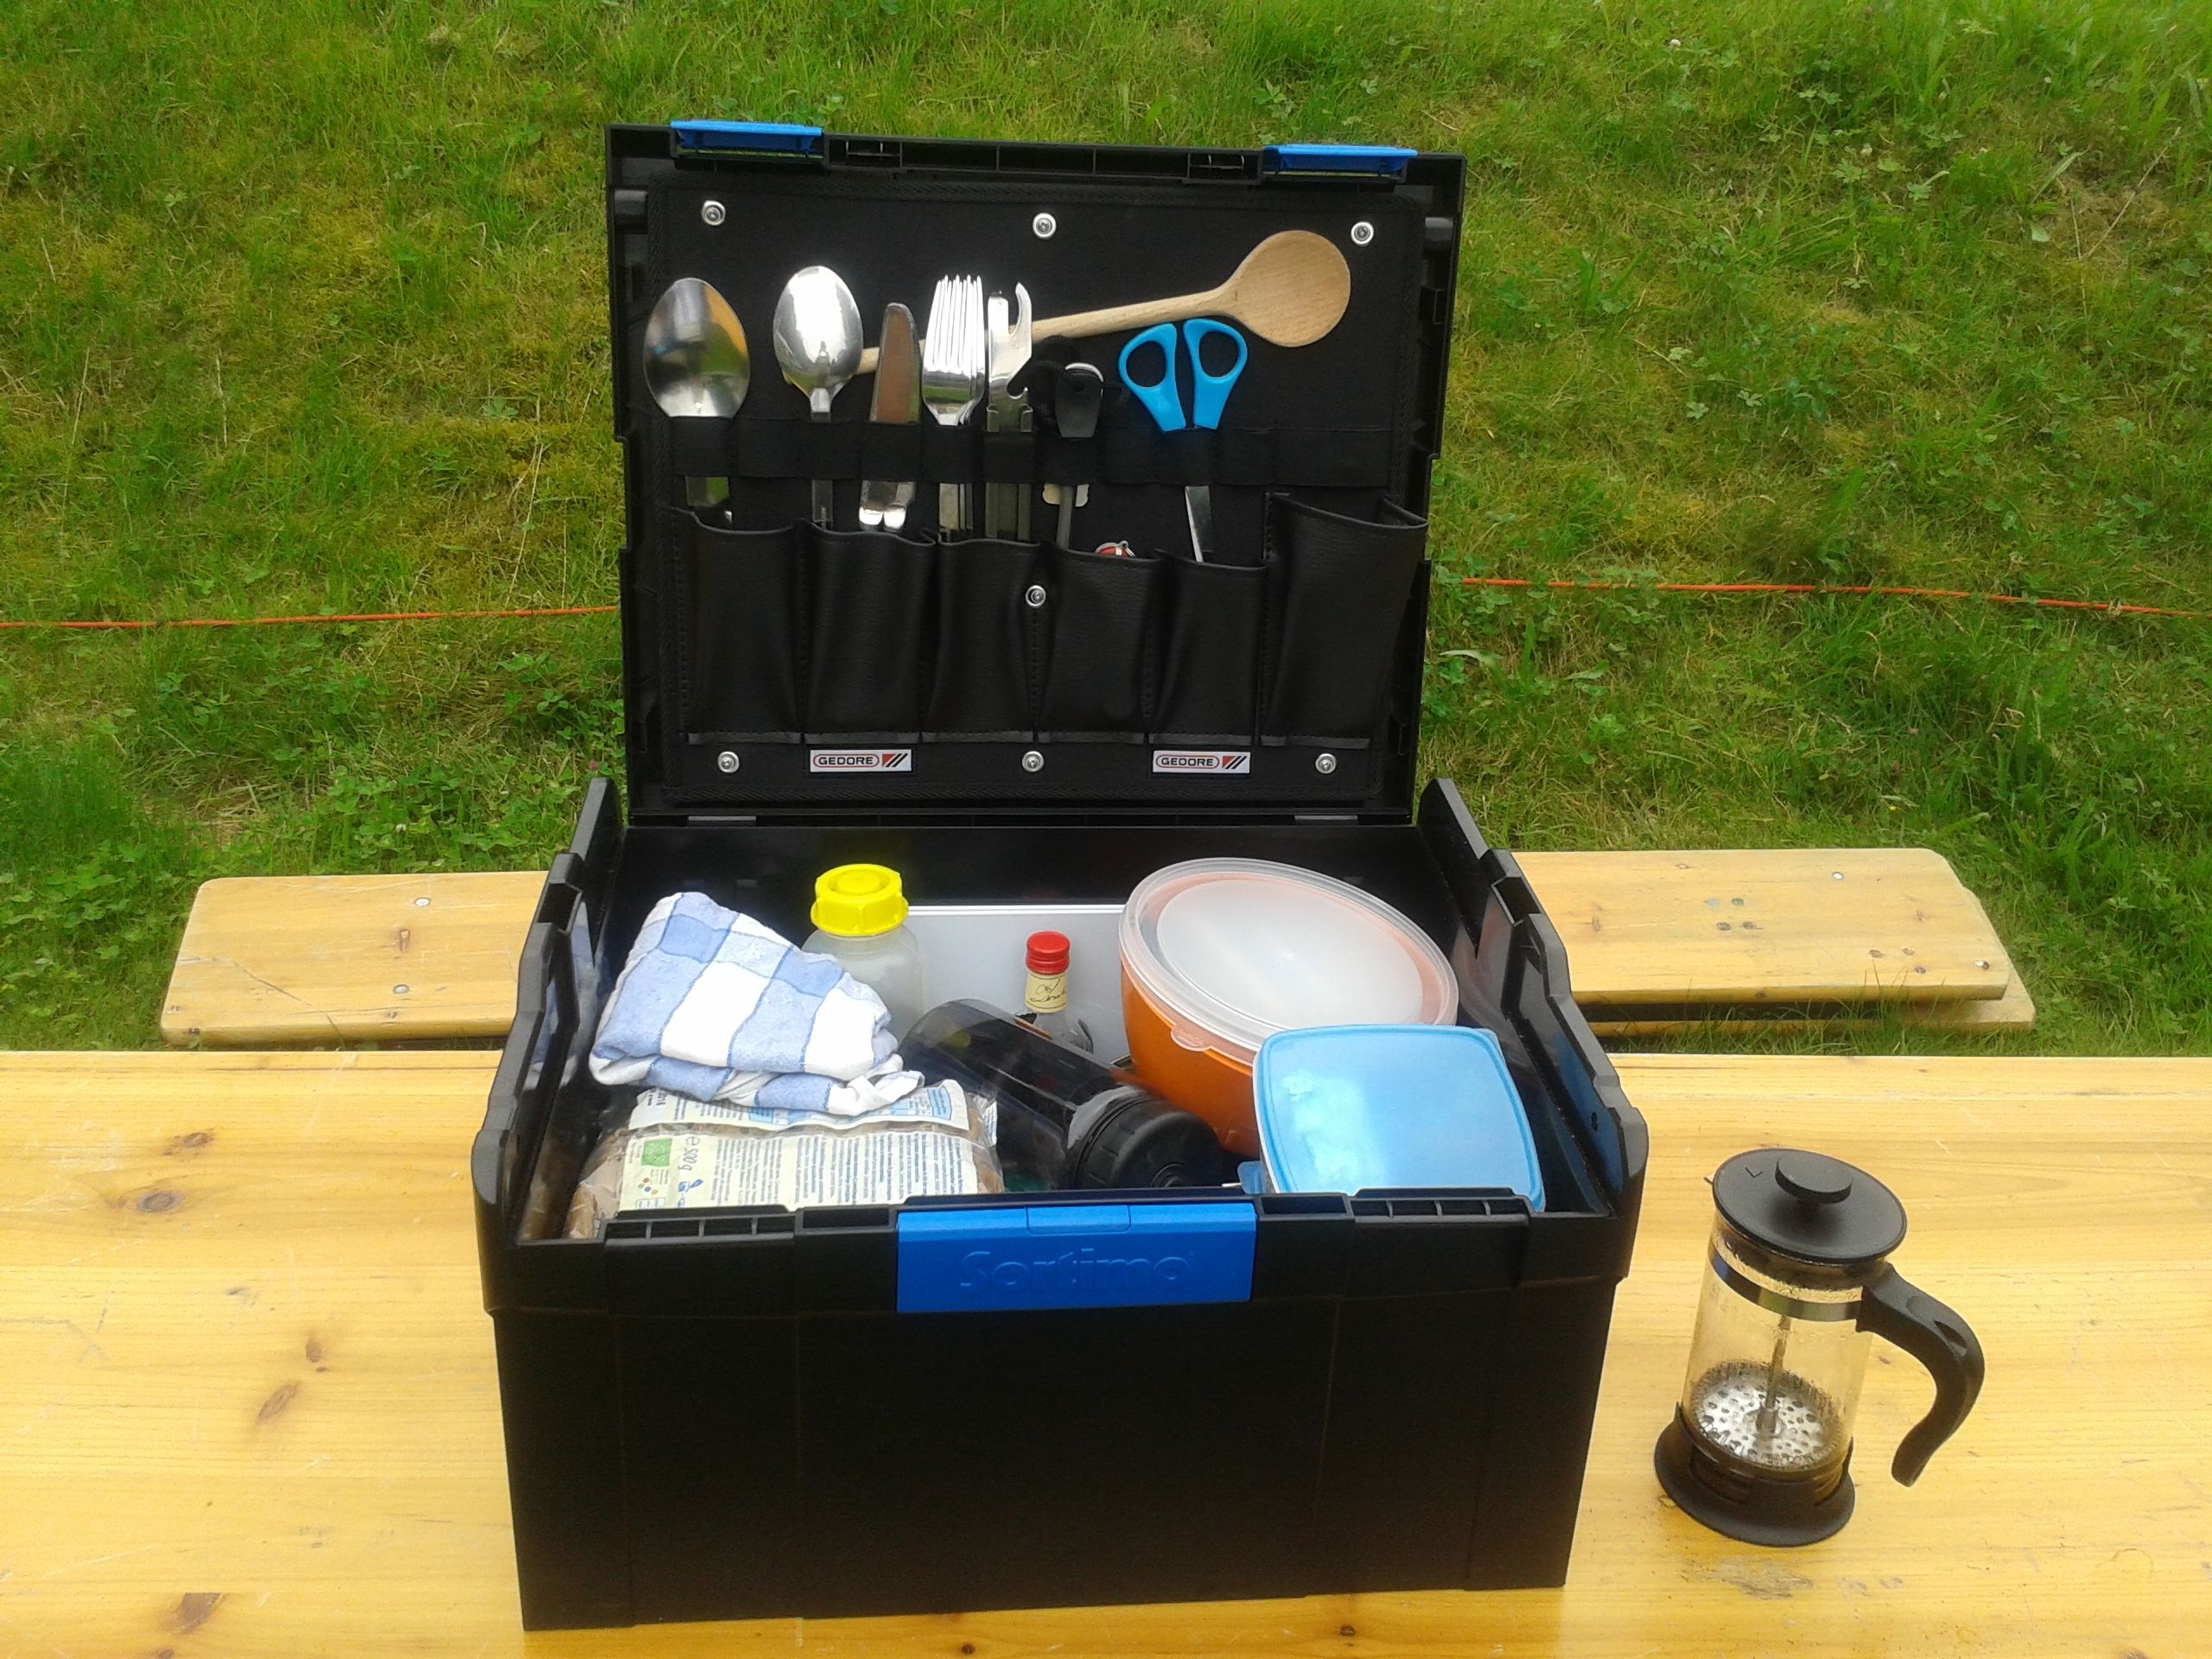 Küchenbox Camping ~ L boxx camping sortimo tools systainer camping